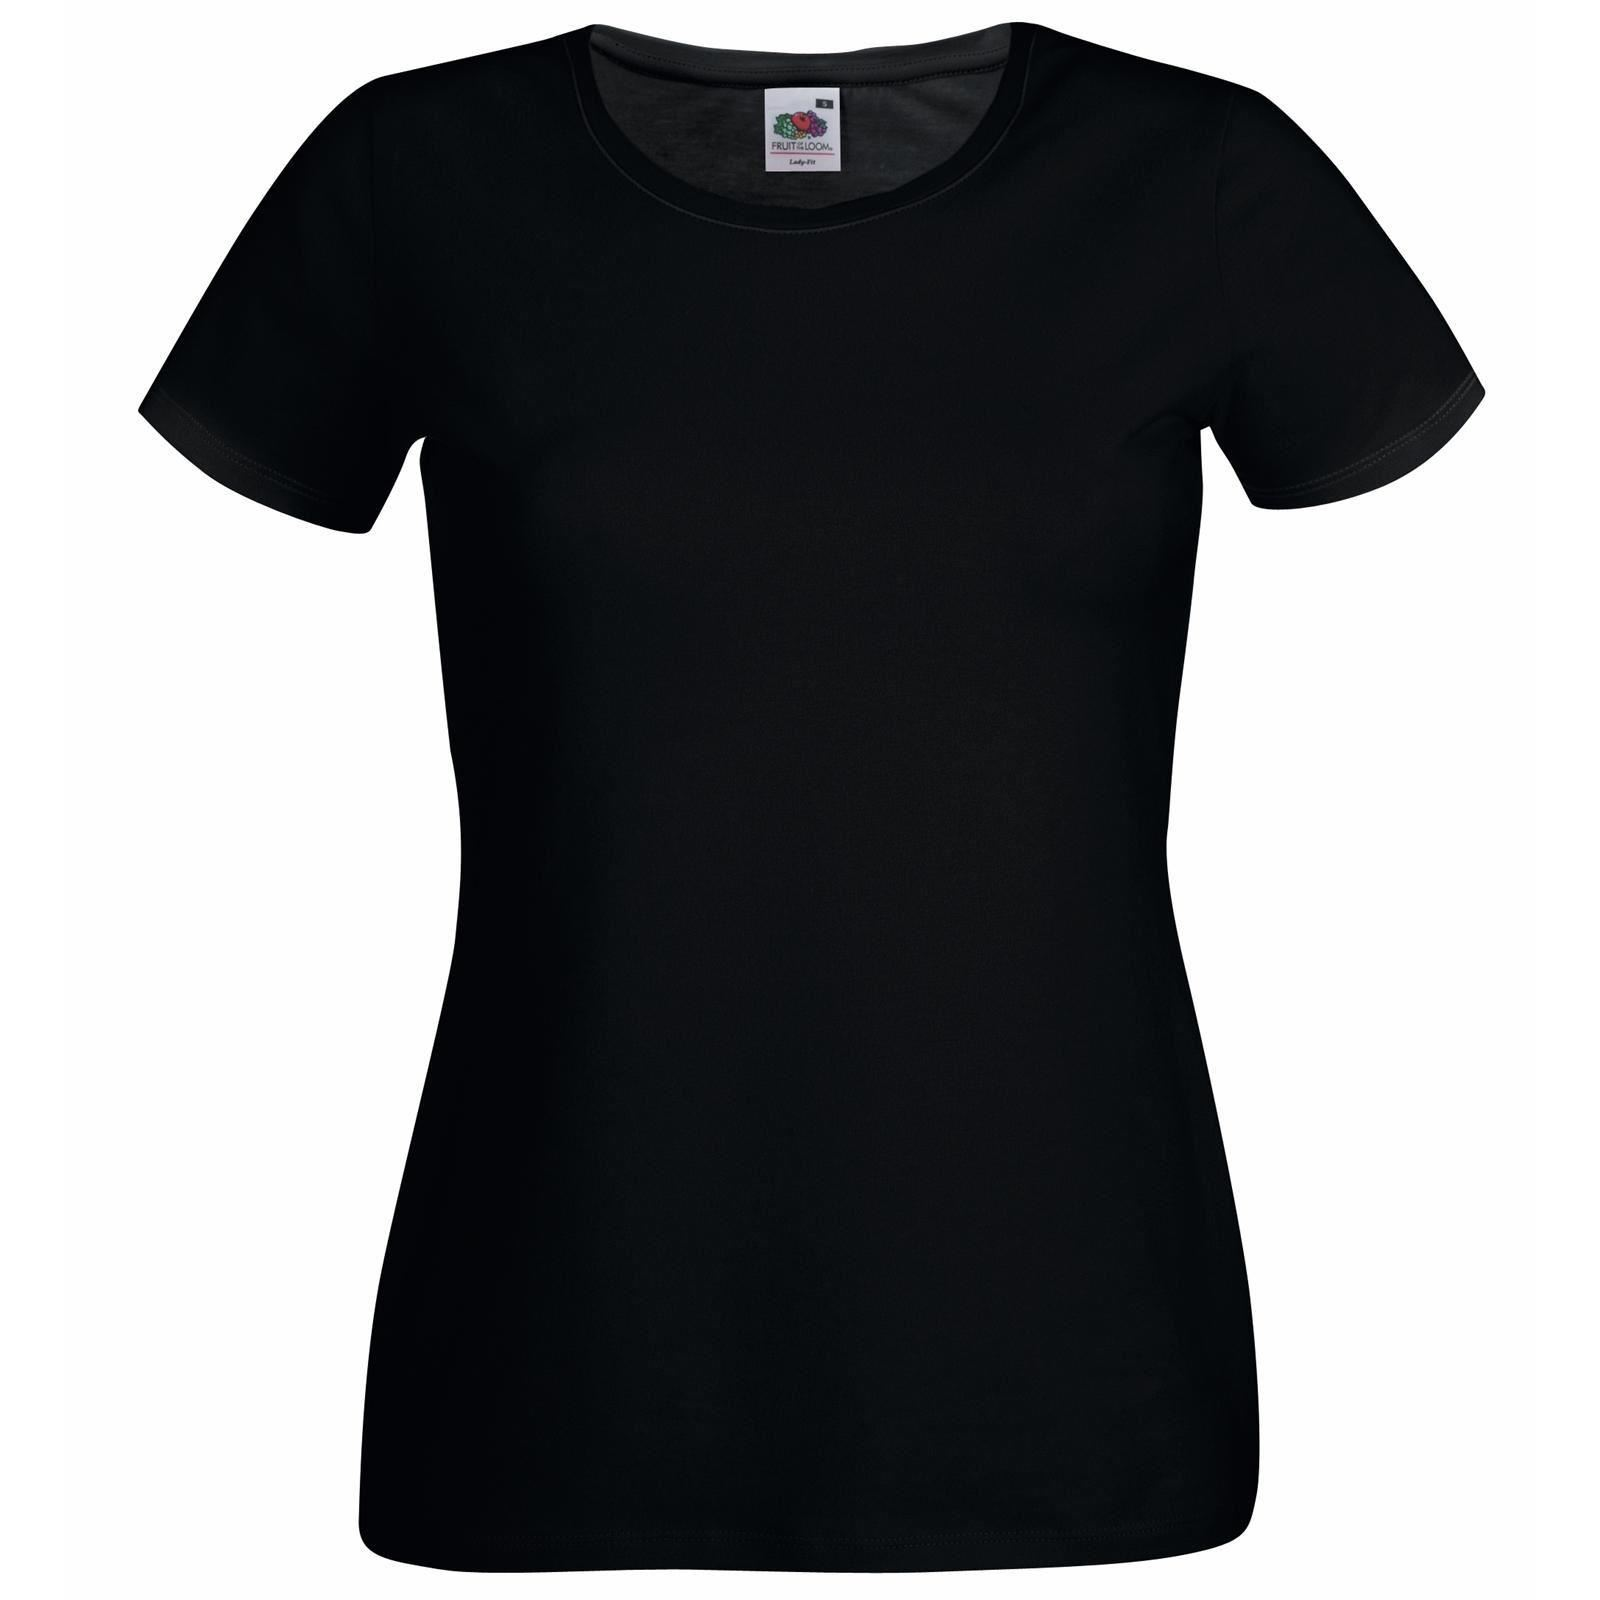 Black fruit of the loom womans soft spun lady fit t shirt for Women s crew t shirts